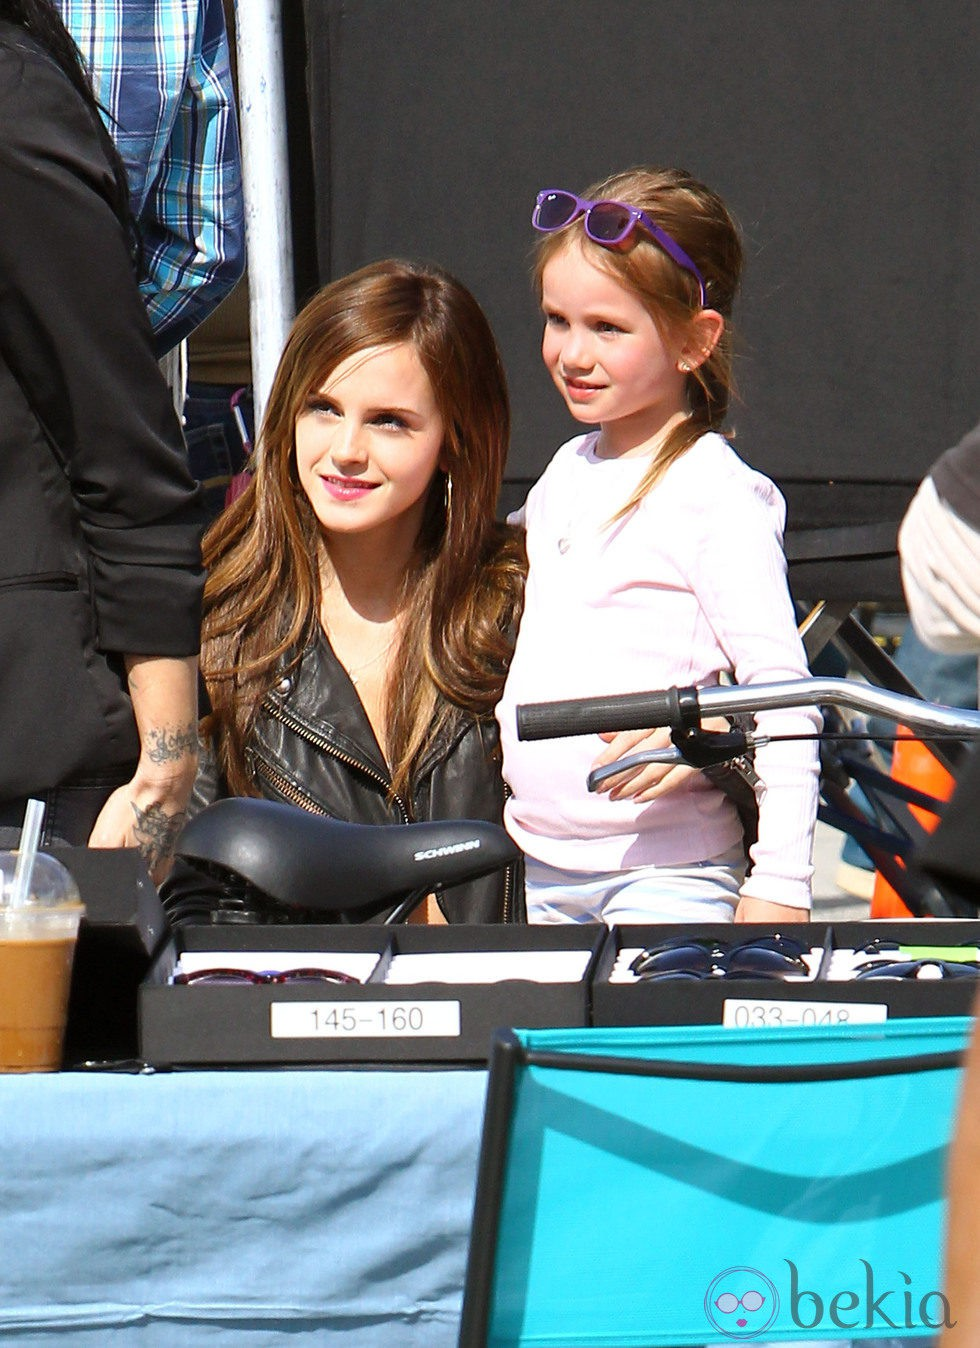 Emma Watson, en el set de rodaje de 'The Bling Ring'